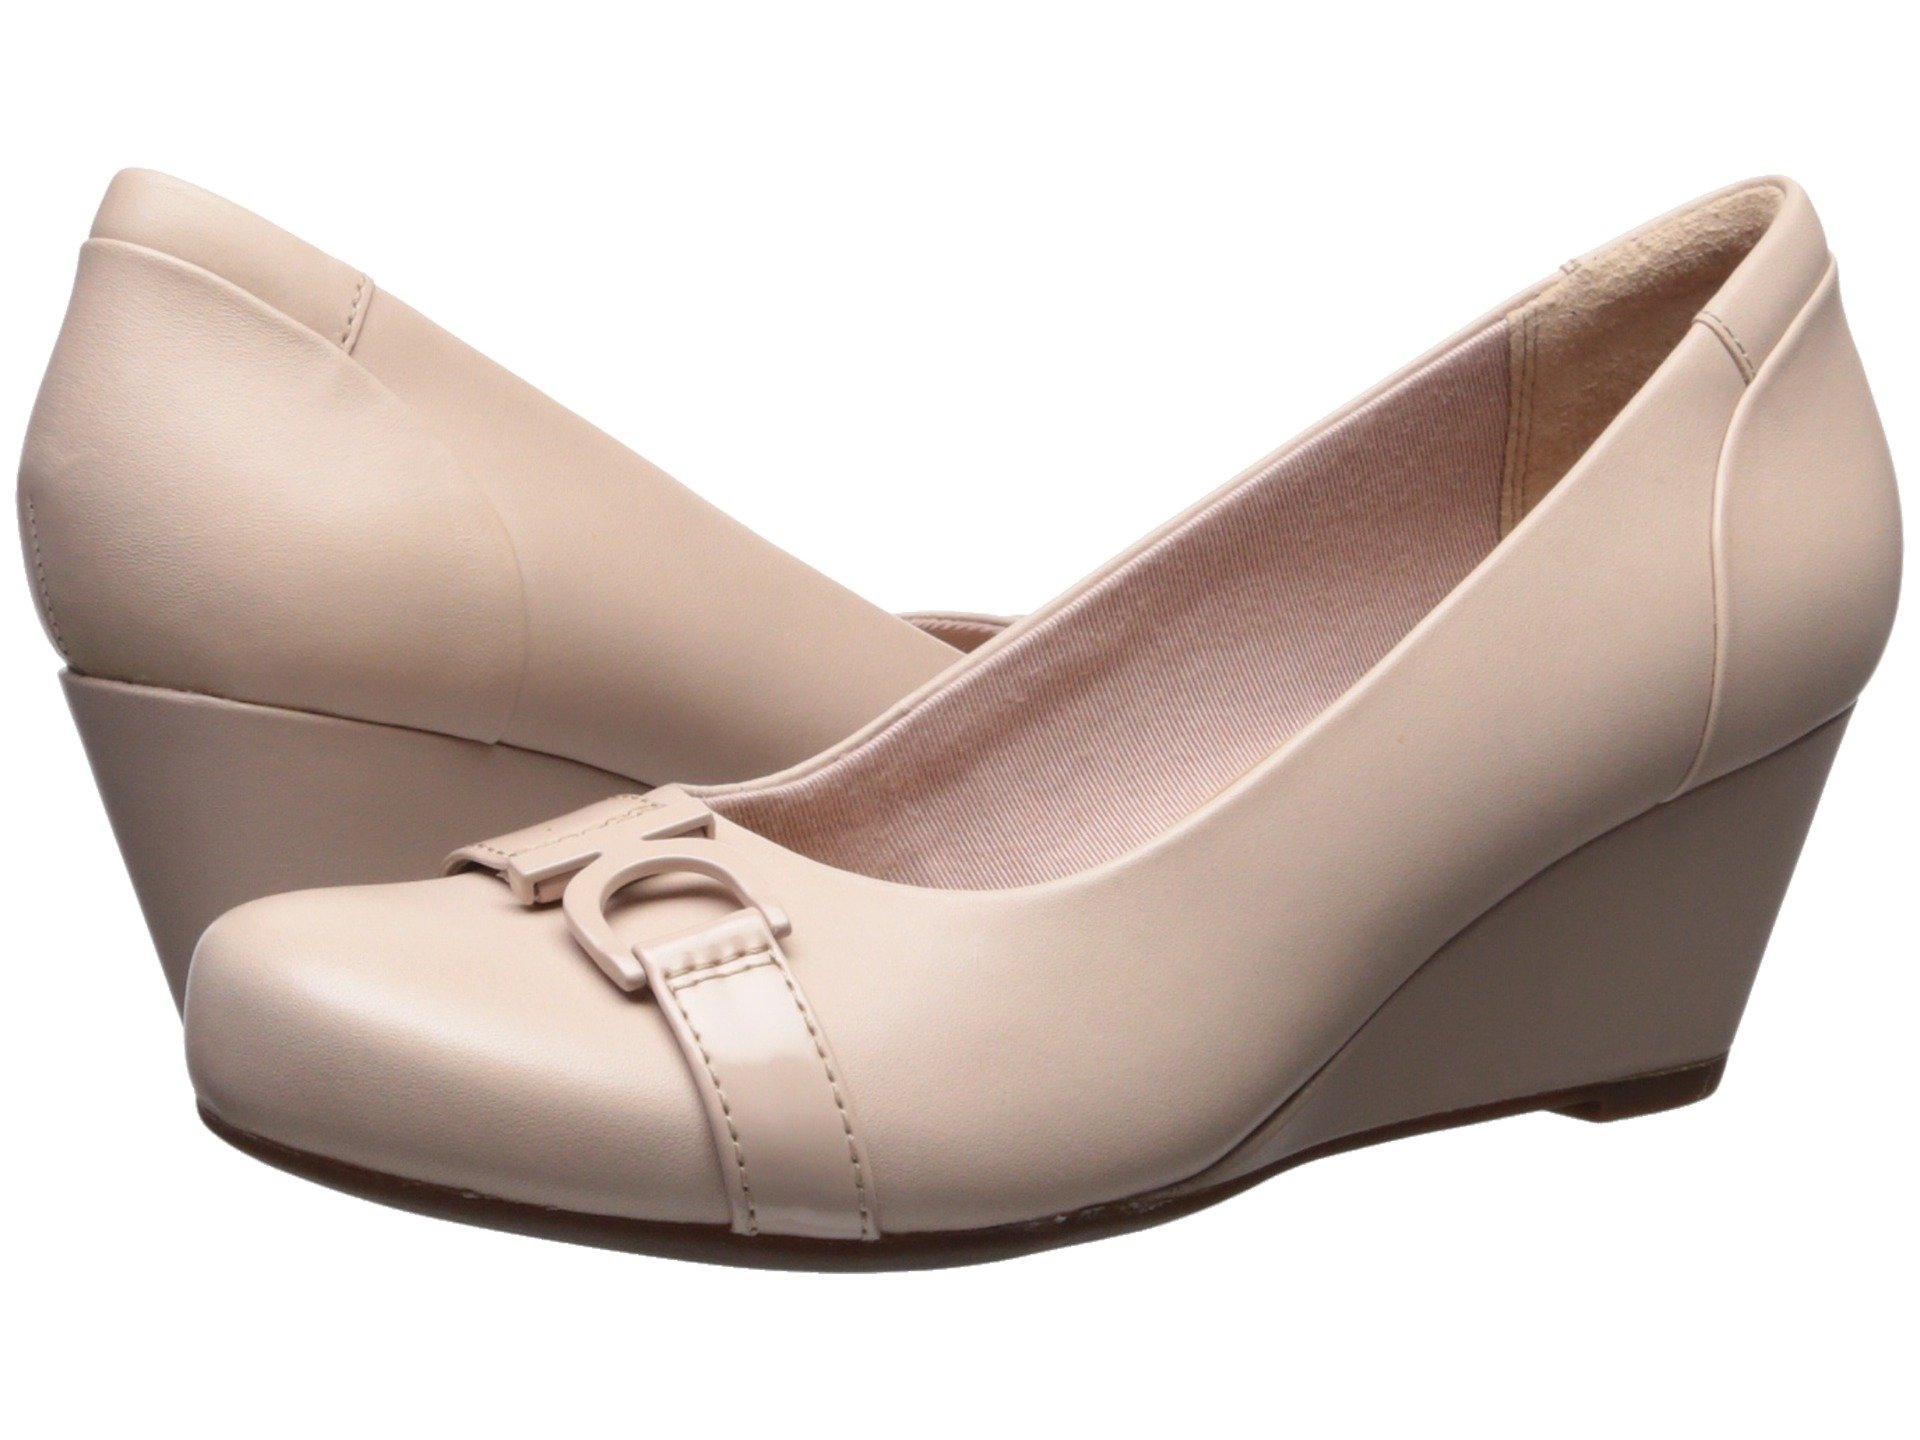 New Clarks Flores Poppy Women's Wedge Shoes, Cream Leather